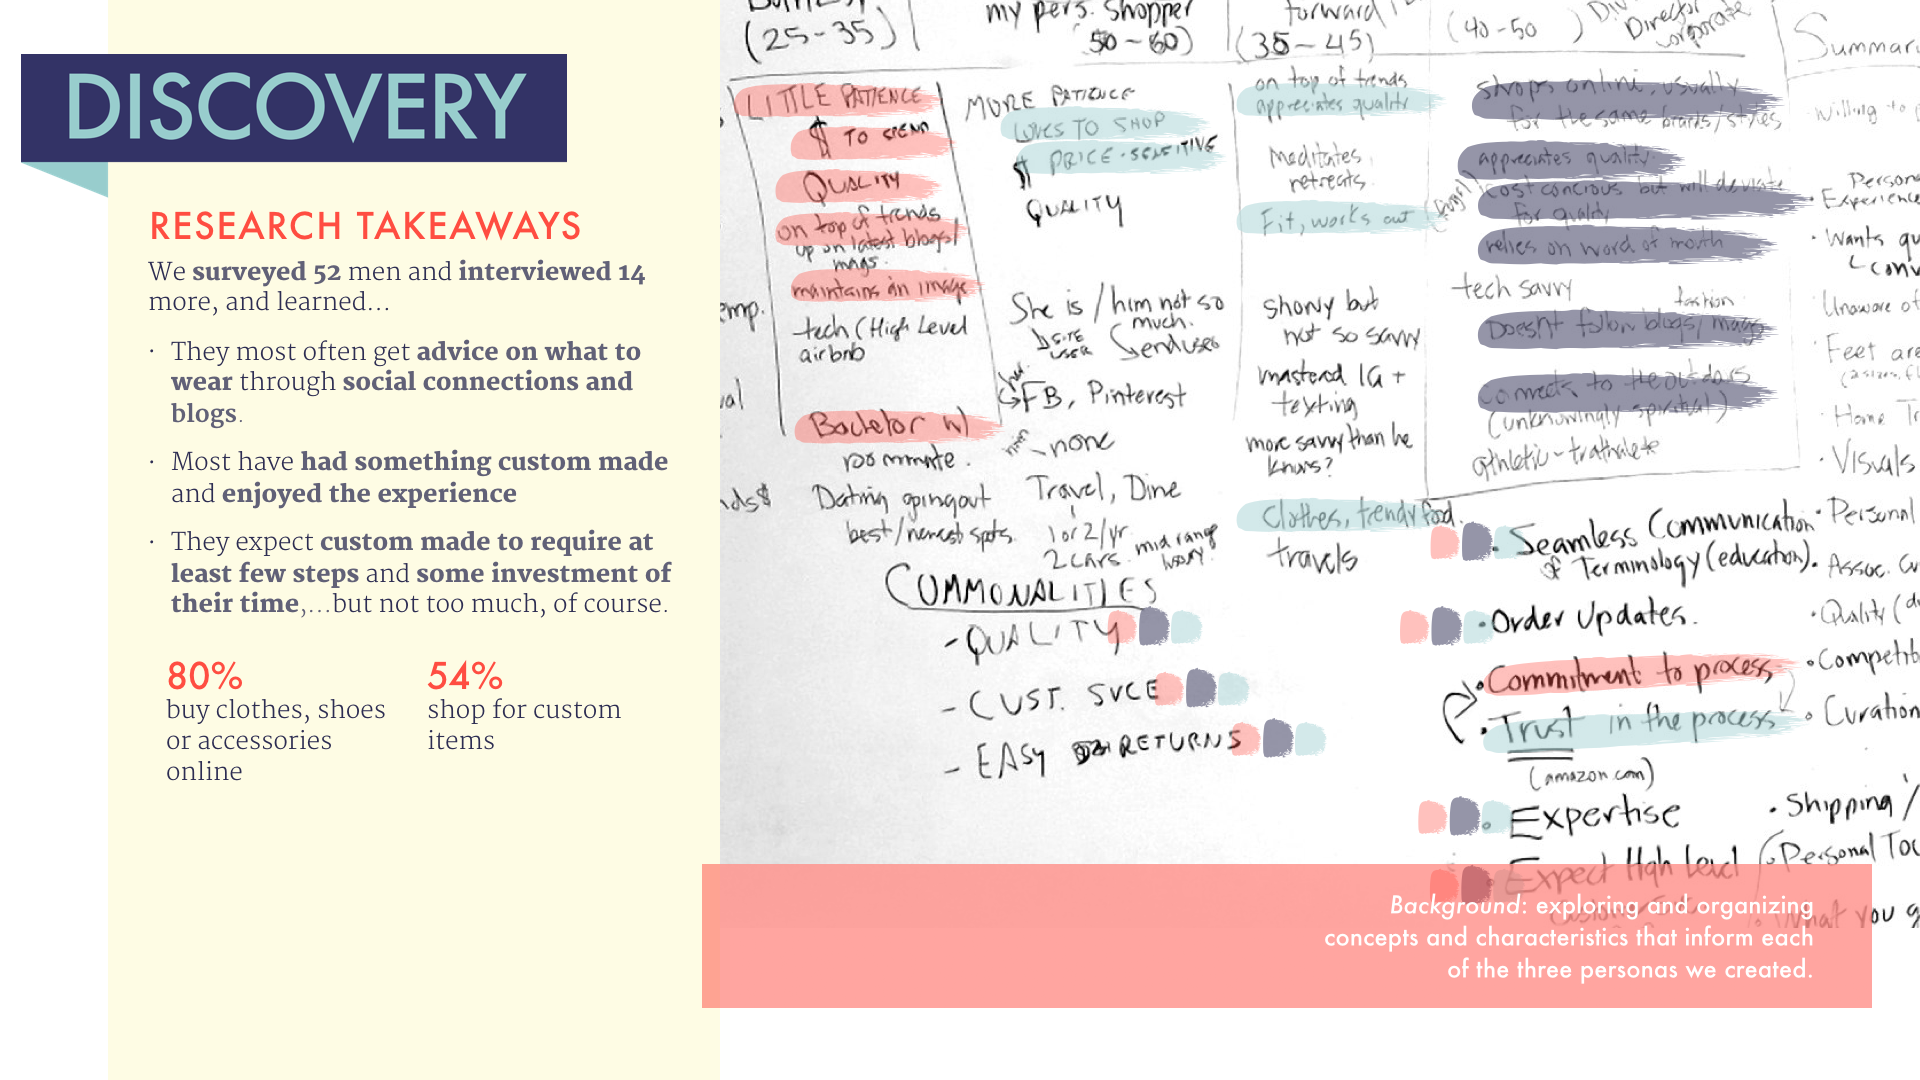 CaseStudy_A&S_REVISED.005.png